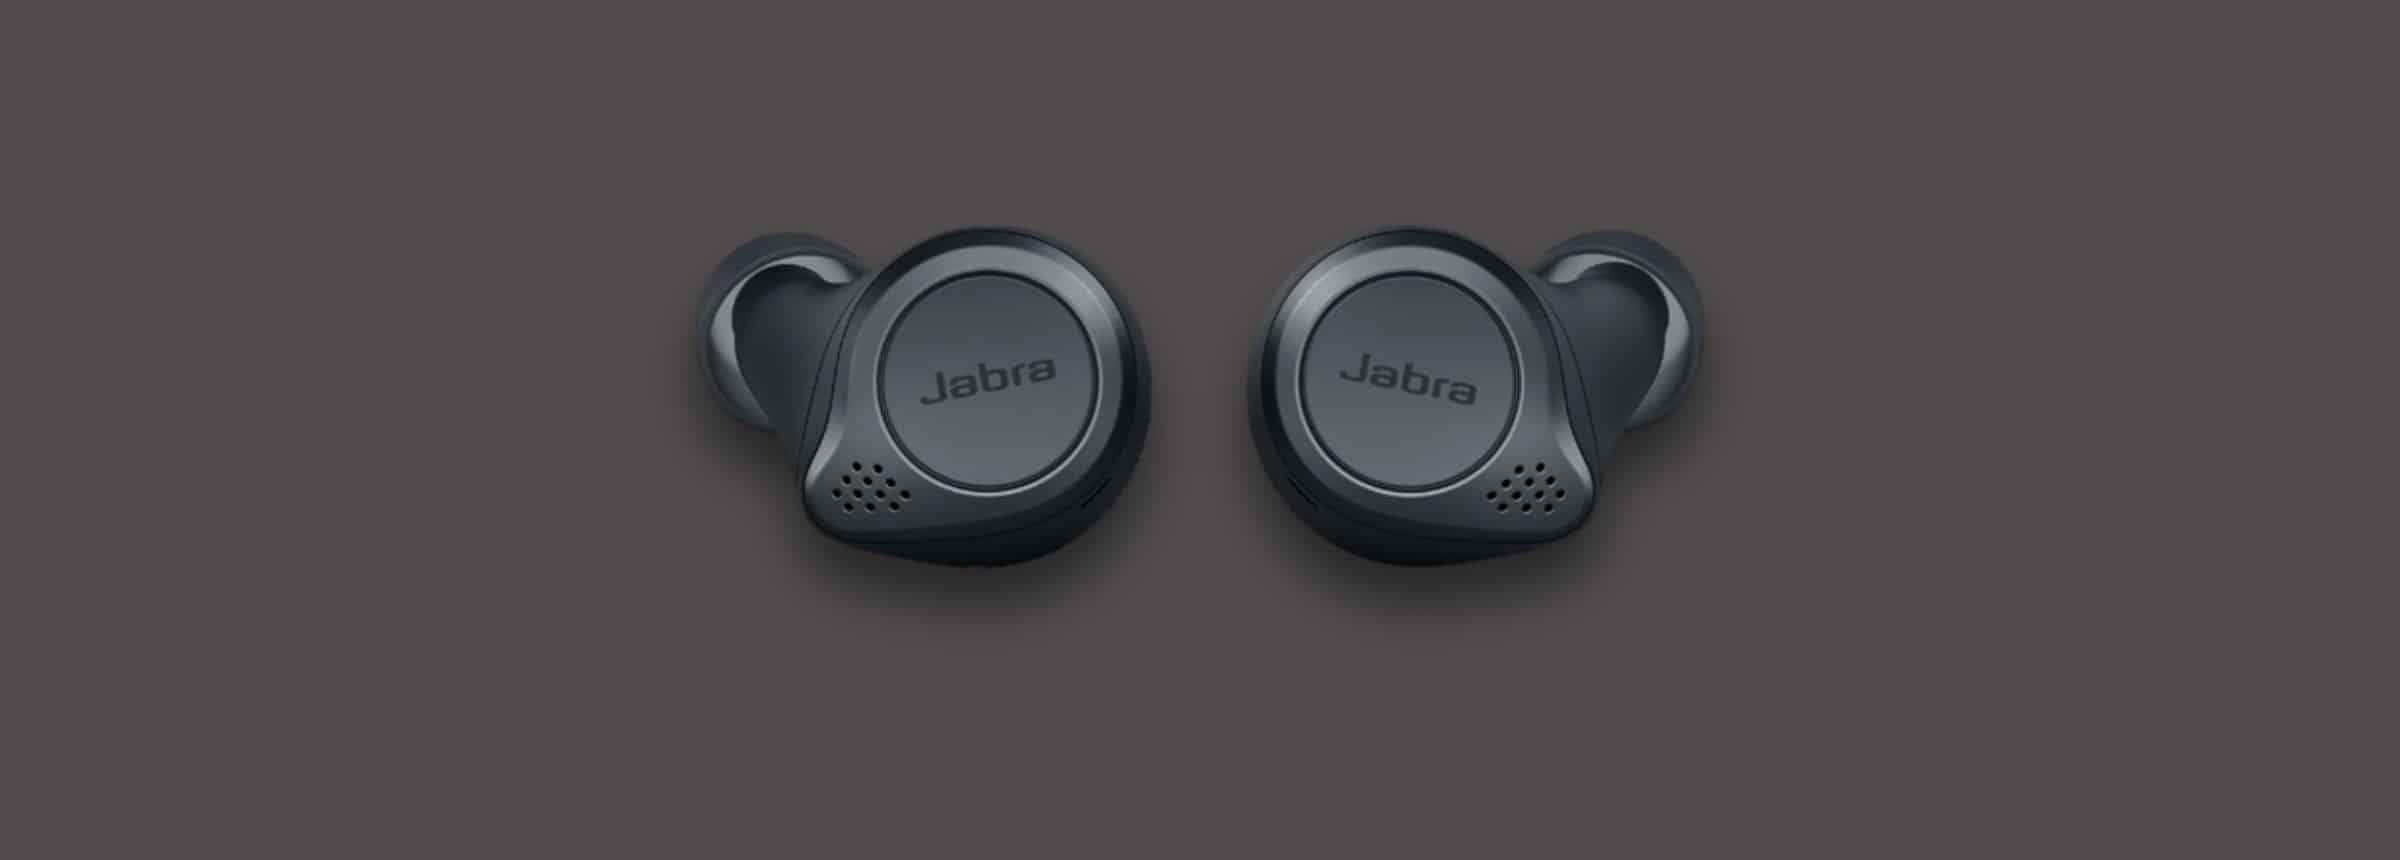 June Deals: Free Jabra Elite Active 75T Wireless Earbuds (Worth $318), and Last Call For $200 With No Min Spend,